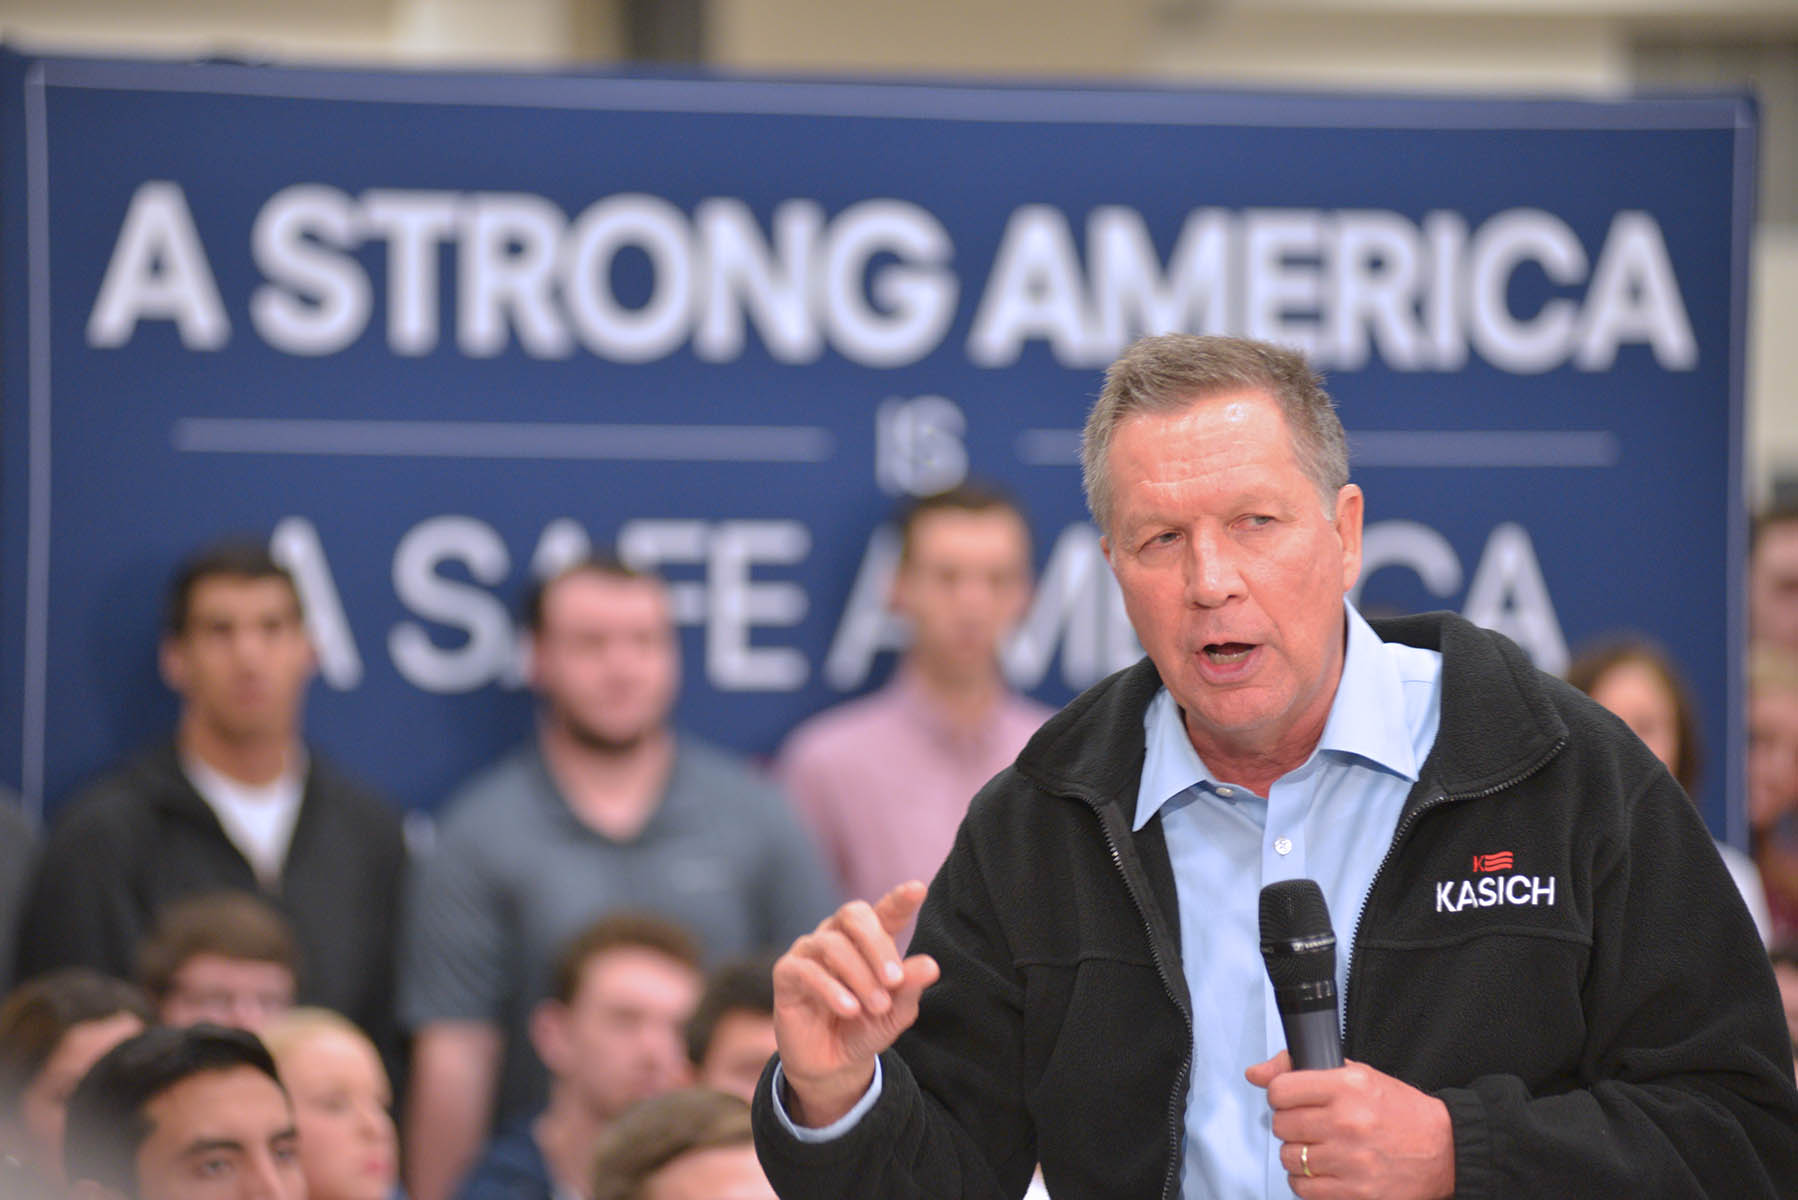 Kasich Strong America